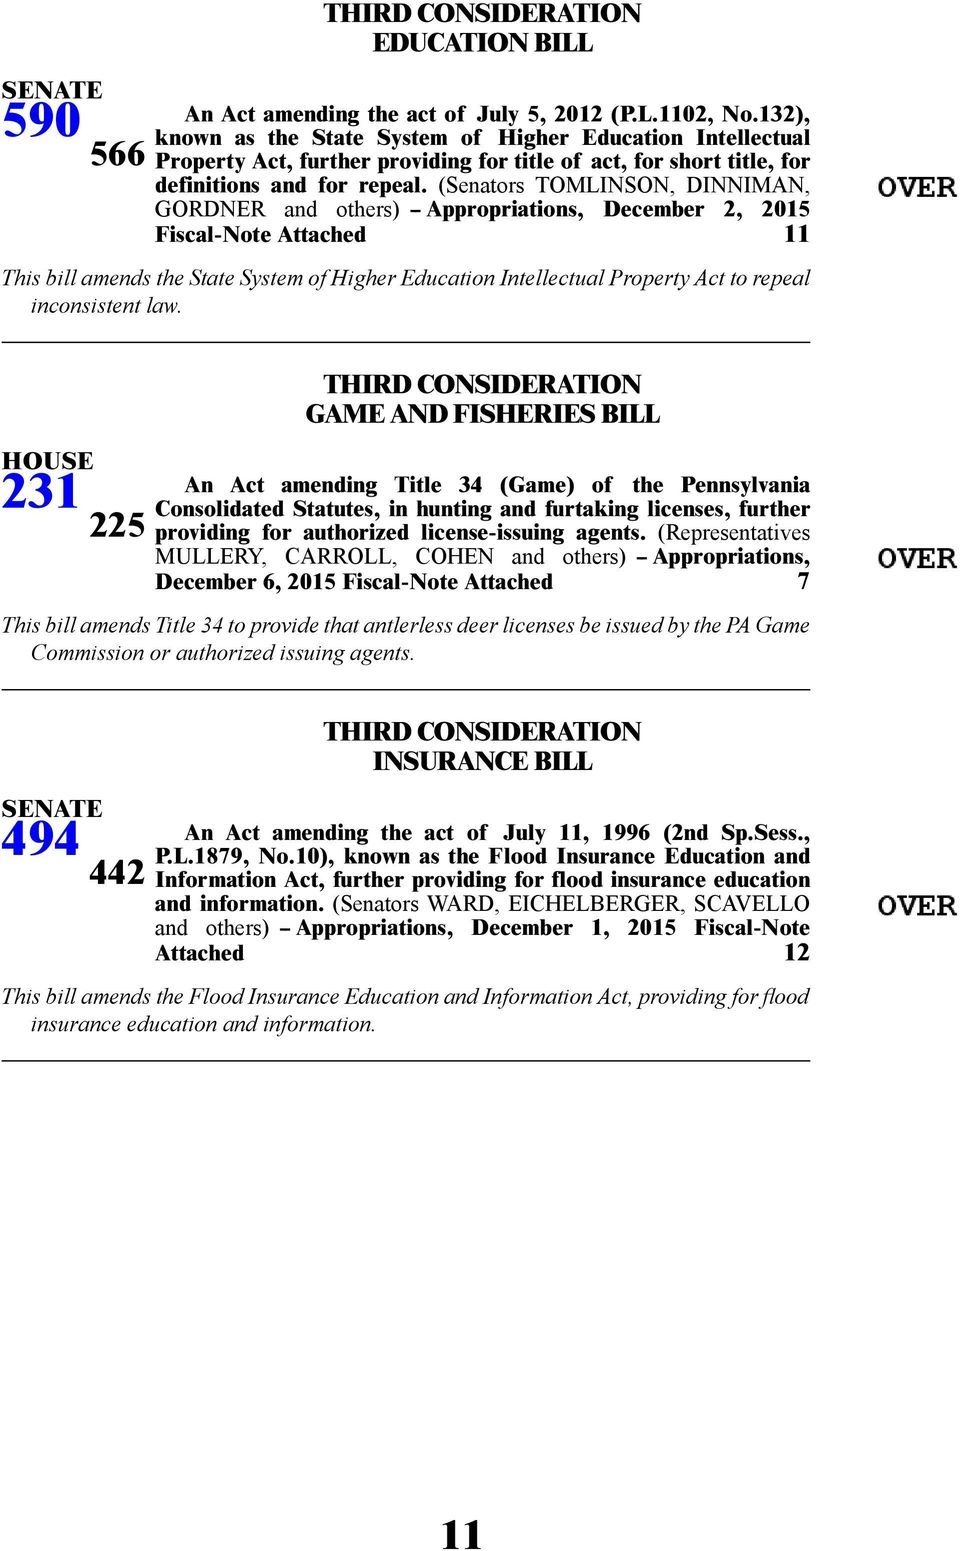 (Senators TOMLINSON, DINNIMAN, GORDNER and others) -- Appropriations, December 2, 2015 Fiscal-Note Attached 11 This bill amends the State System of Higher Education Intellectual Property Act to